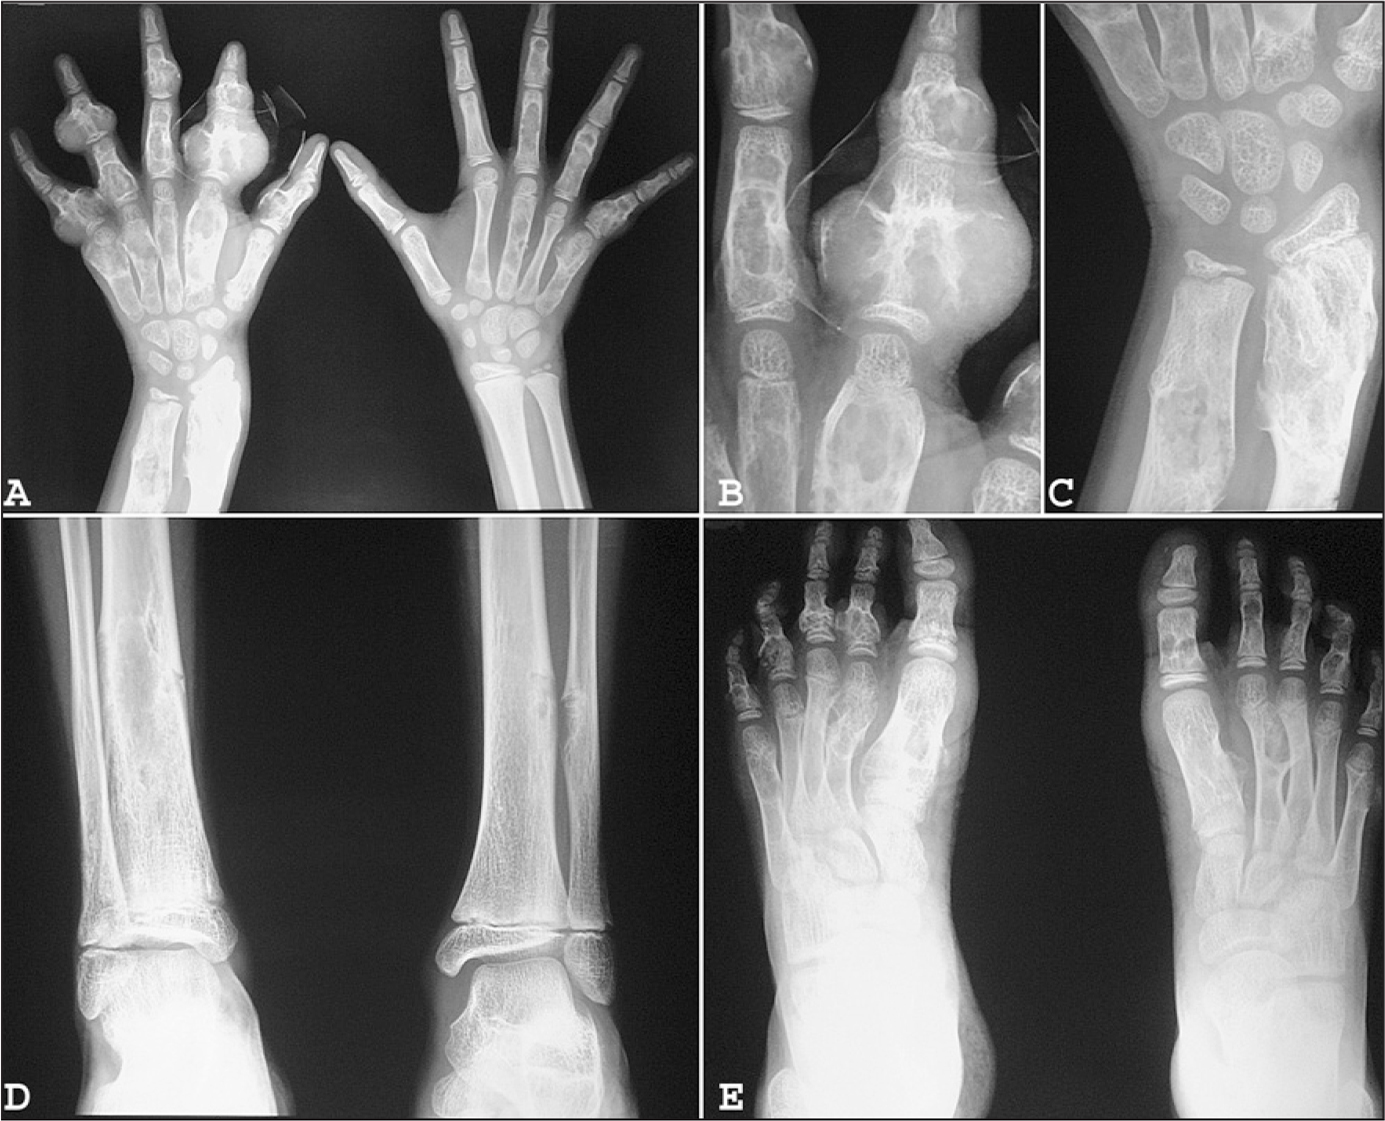 Anteroposterior radiographs of both hands (A), fingers (B), wrist (C), leg (D), and feet (E) showing multiple well-defined, expansile lytic lesions involving the metacarpals, metatarsals, phalanges, distal end of the radius and ulna, and lower end of the tibia/fibula. No matrix mineralization is seen.